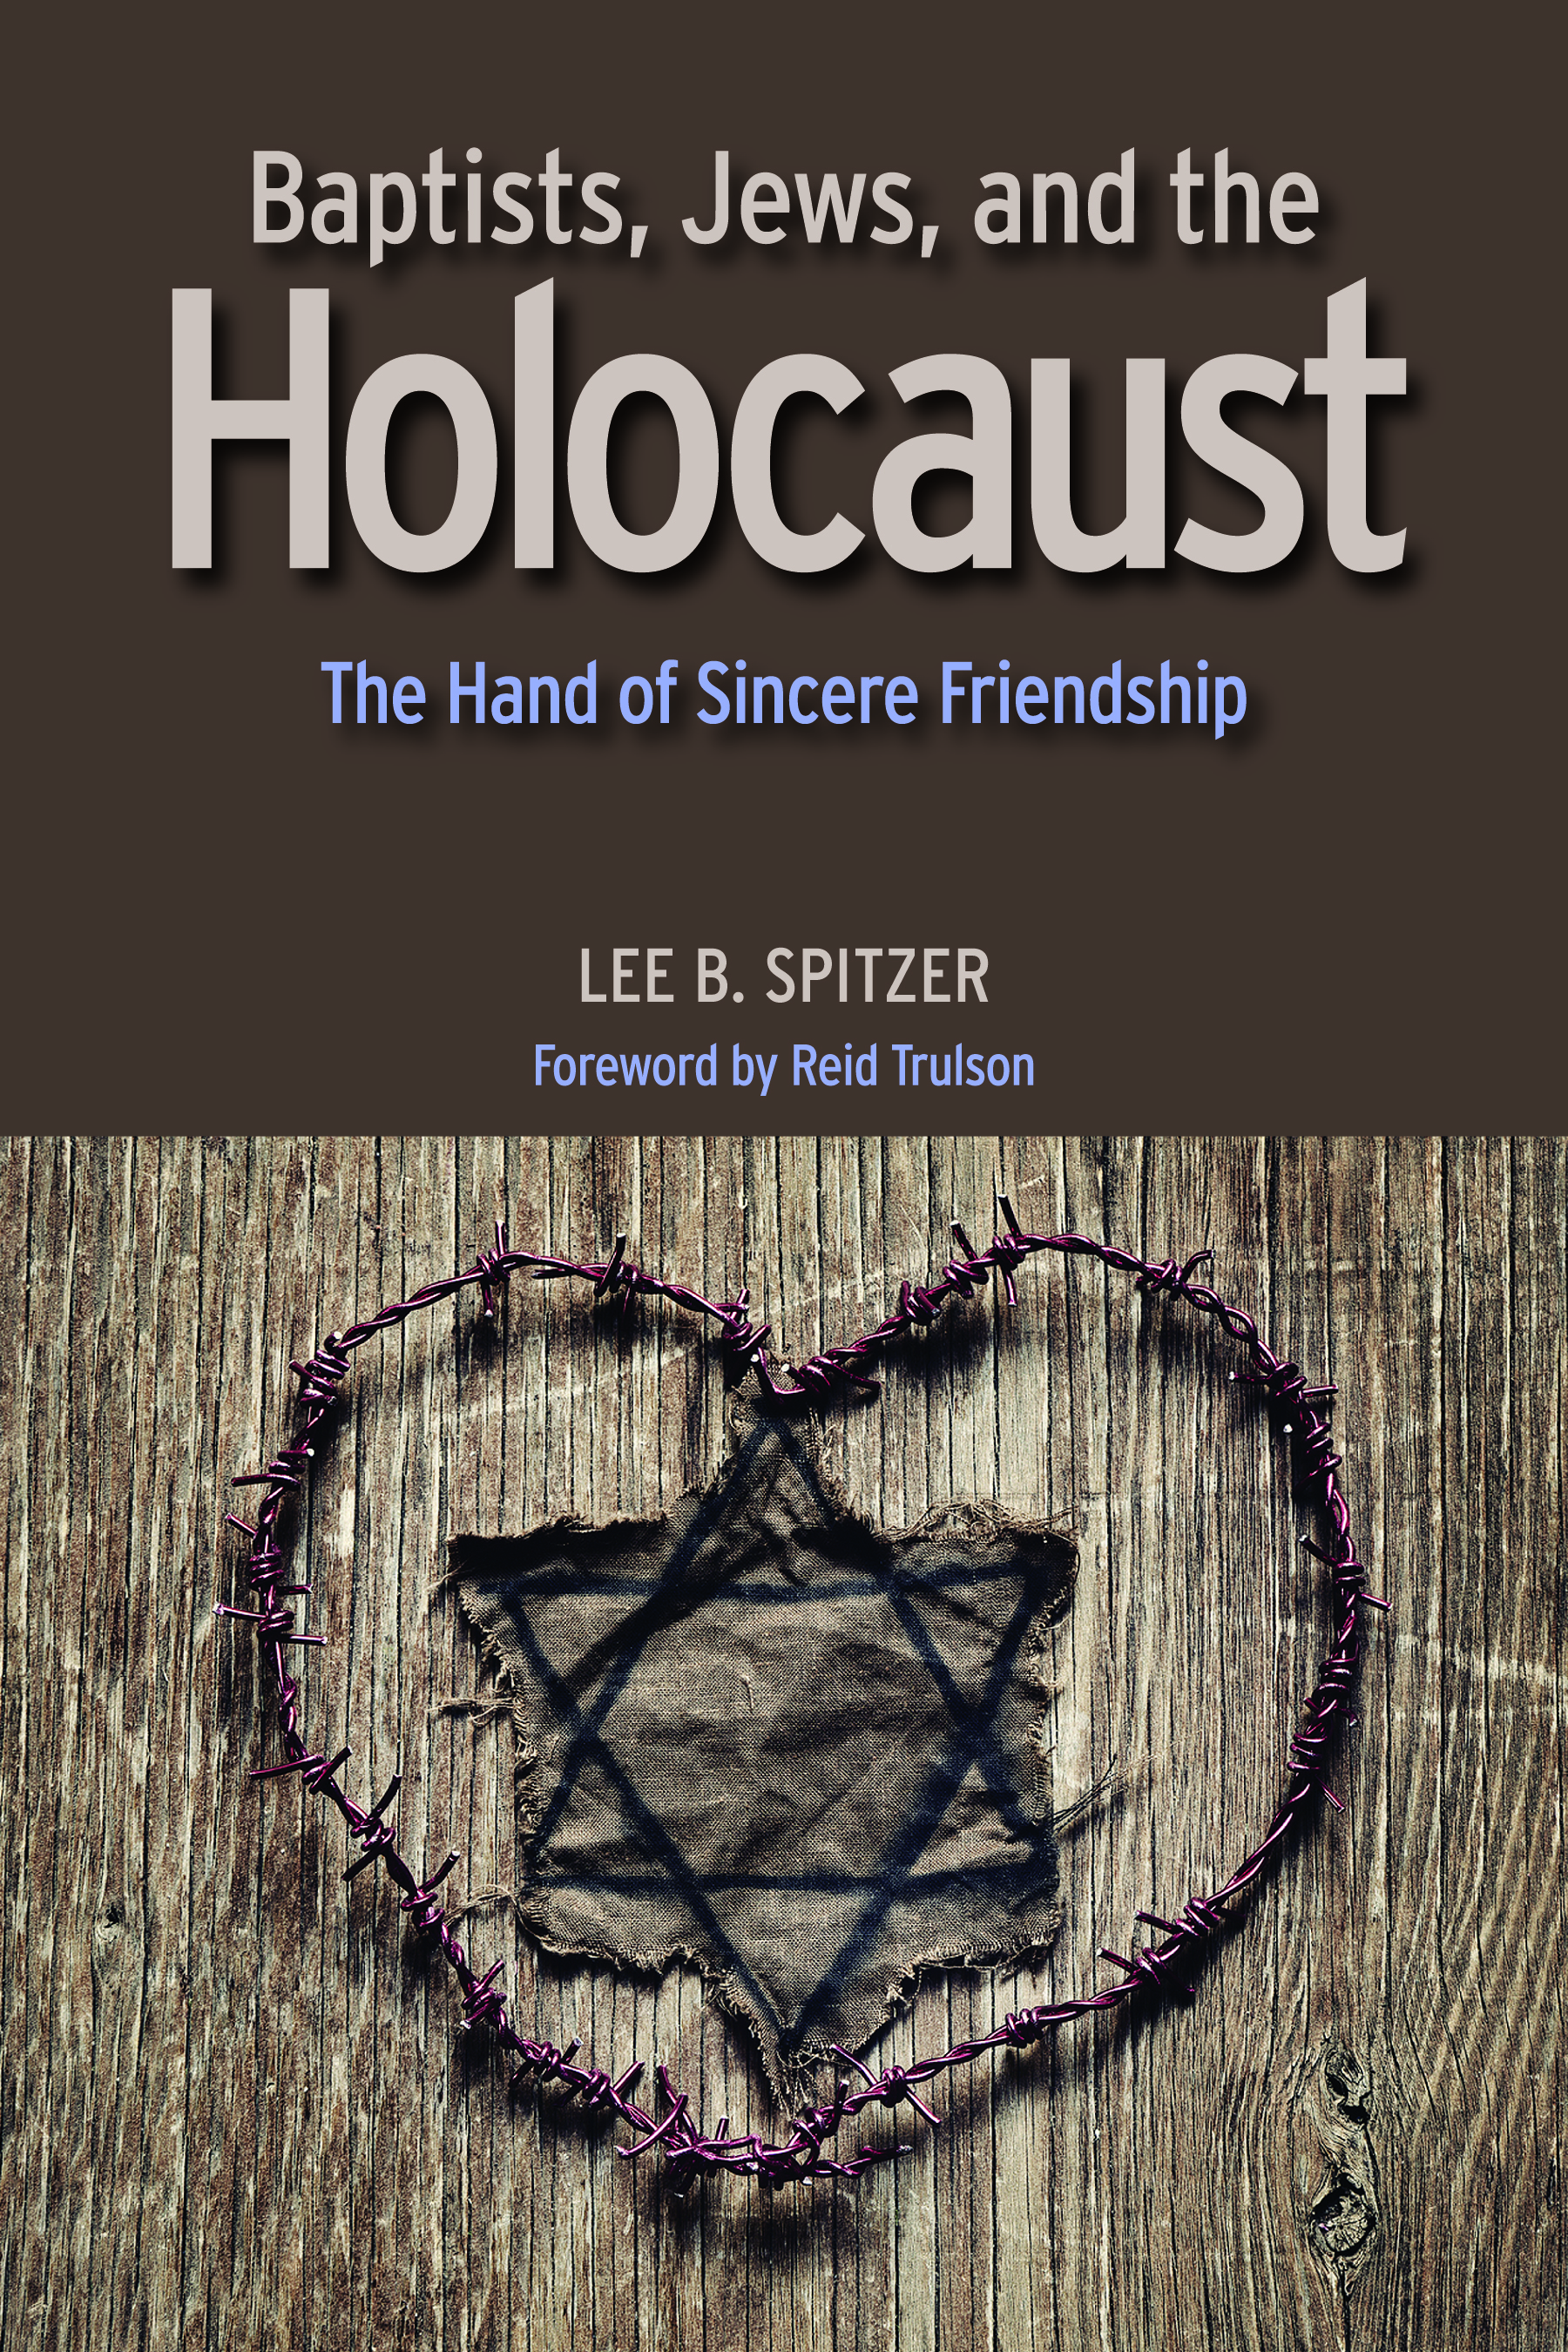 - Click or tap the button below to purchase a copy of Dr. Spitzer's book from Judson Press!